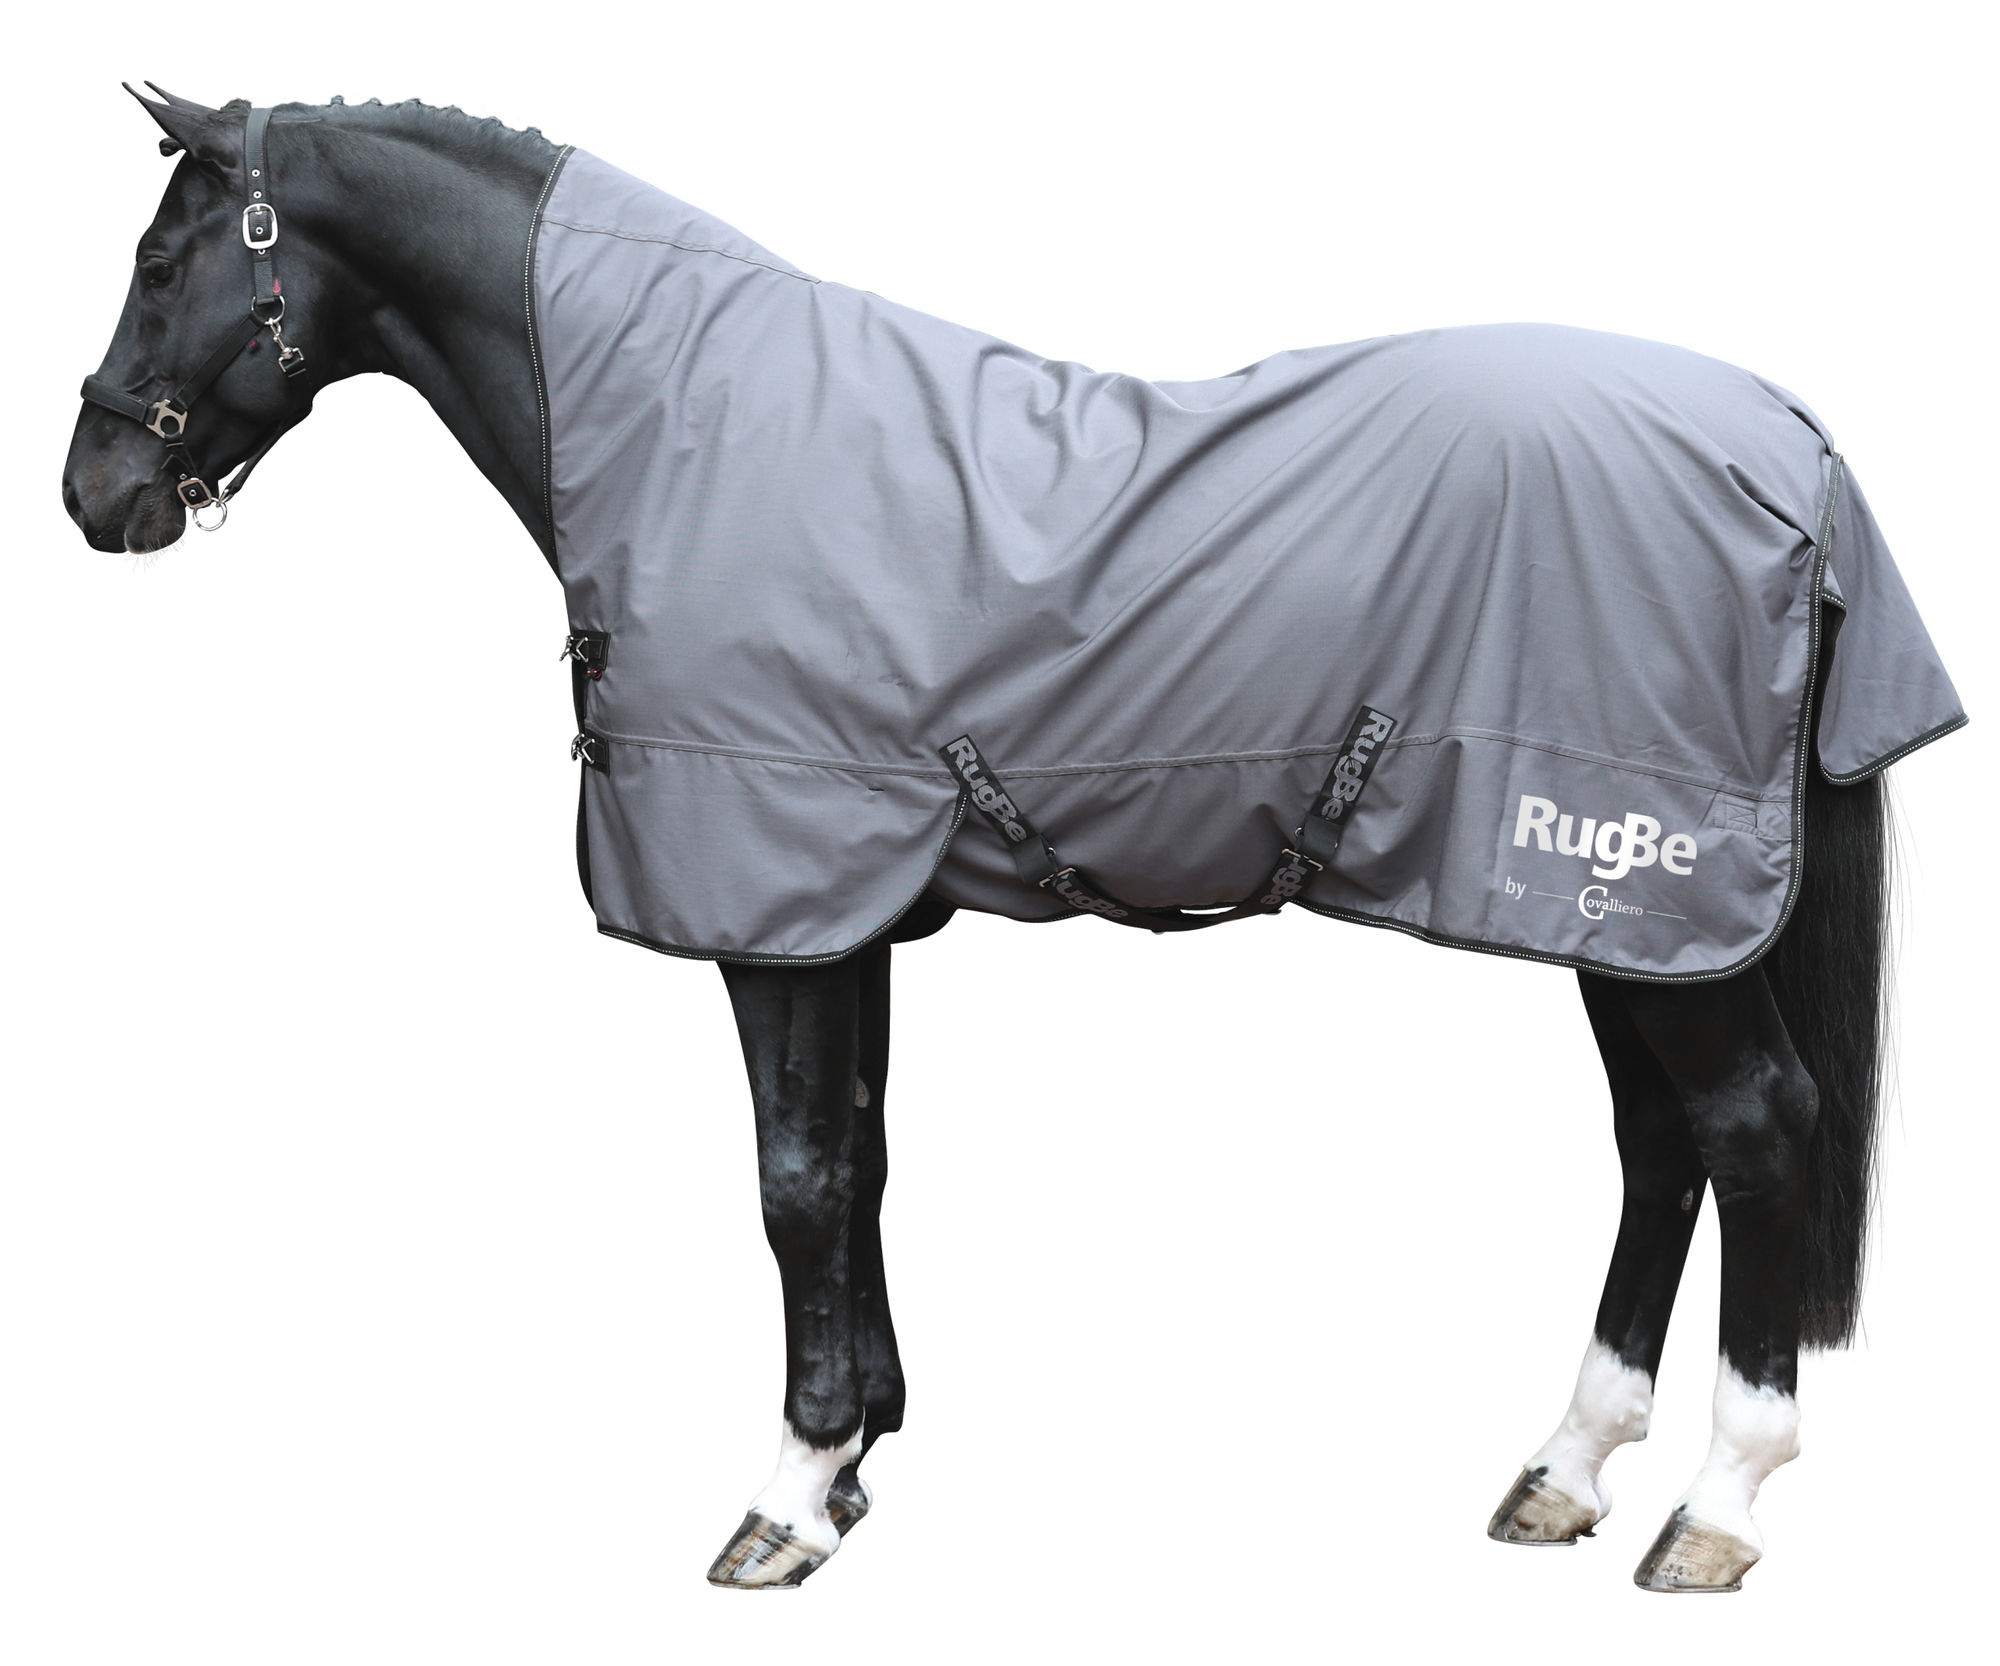 Outdoordecke RugBe Protect, 105cm, HighNeck, grey